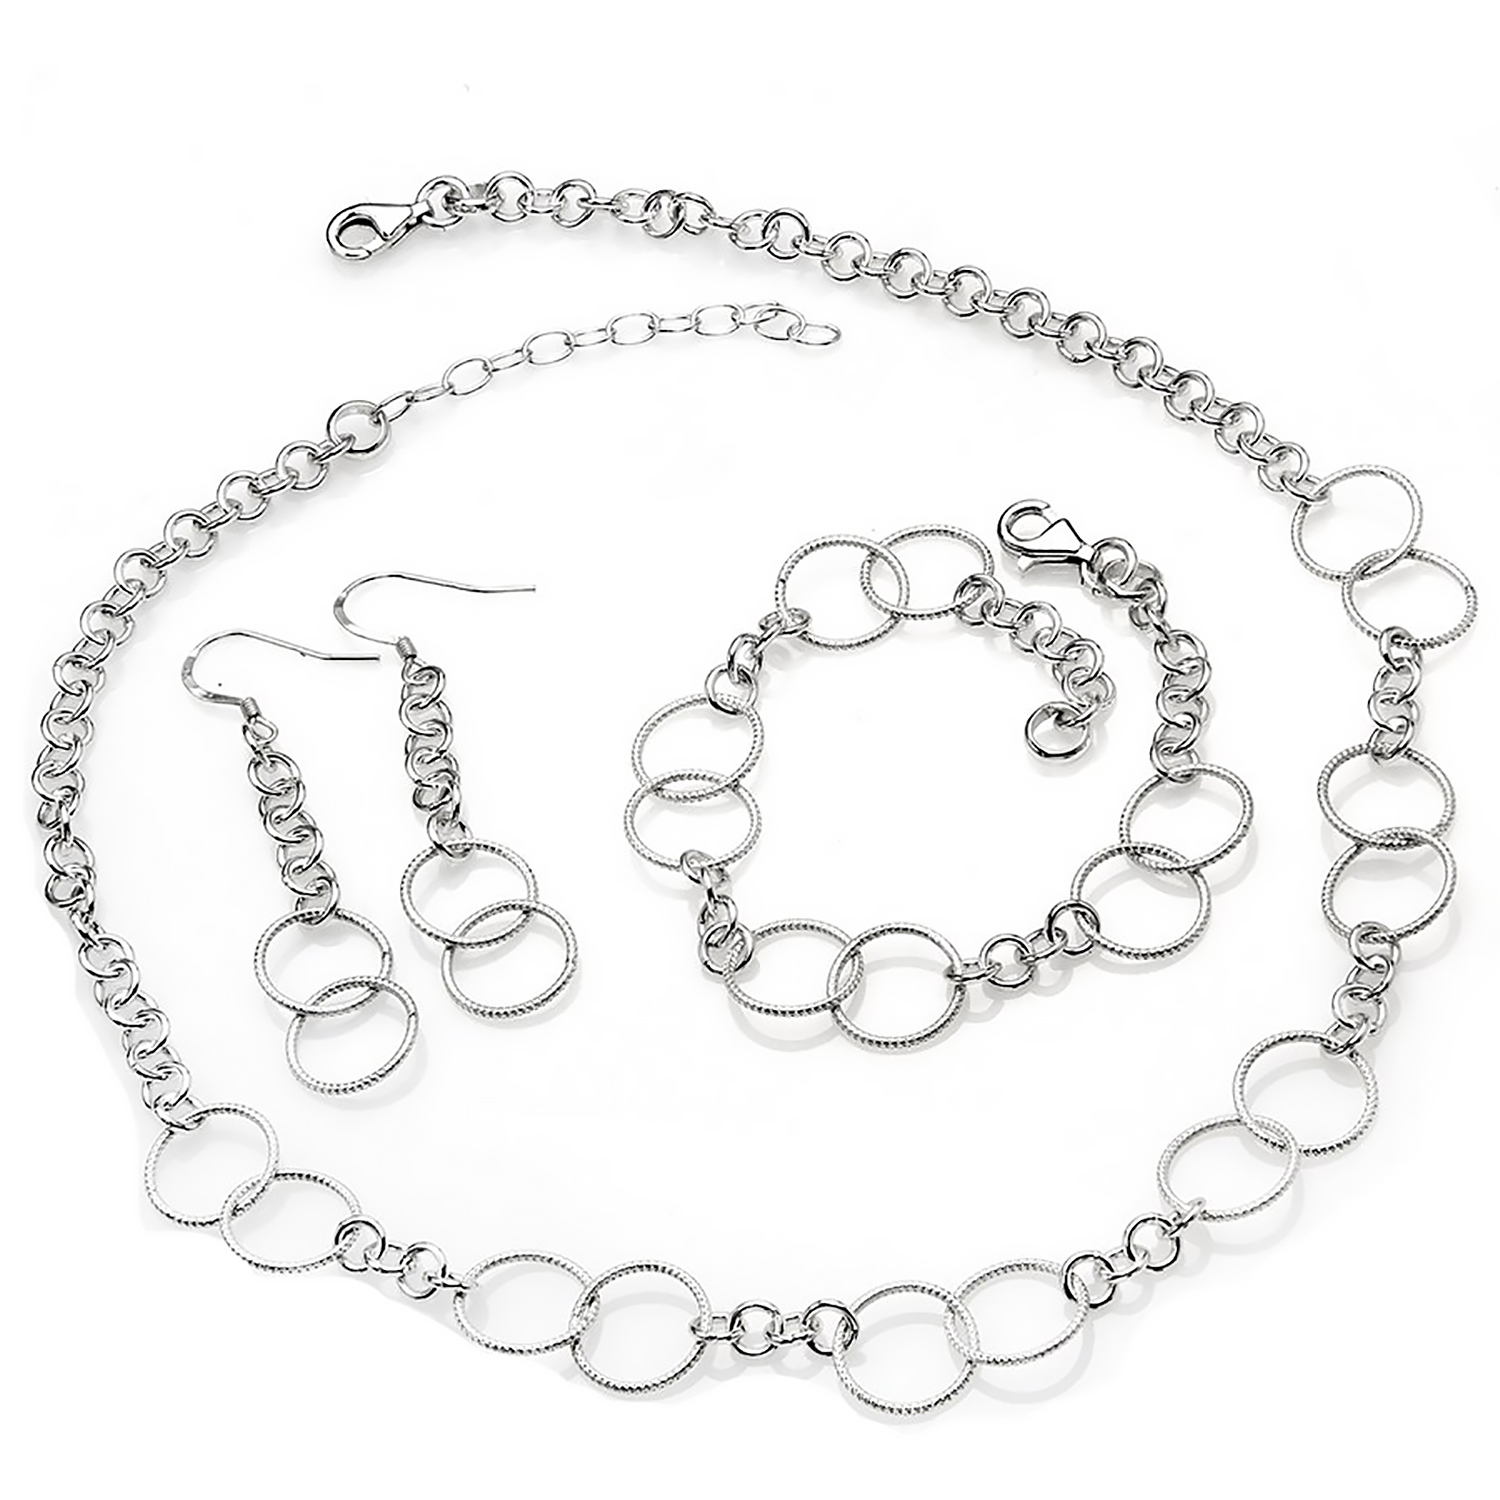 Sterling Silver Necklace, Bracelet & Earring Set